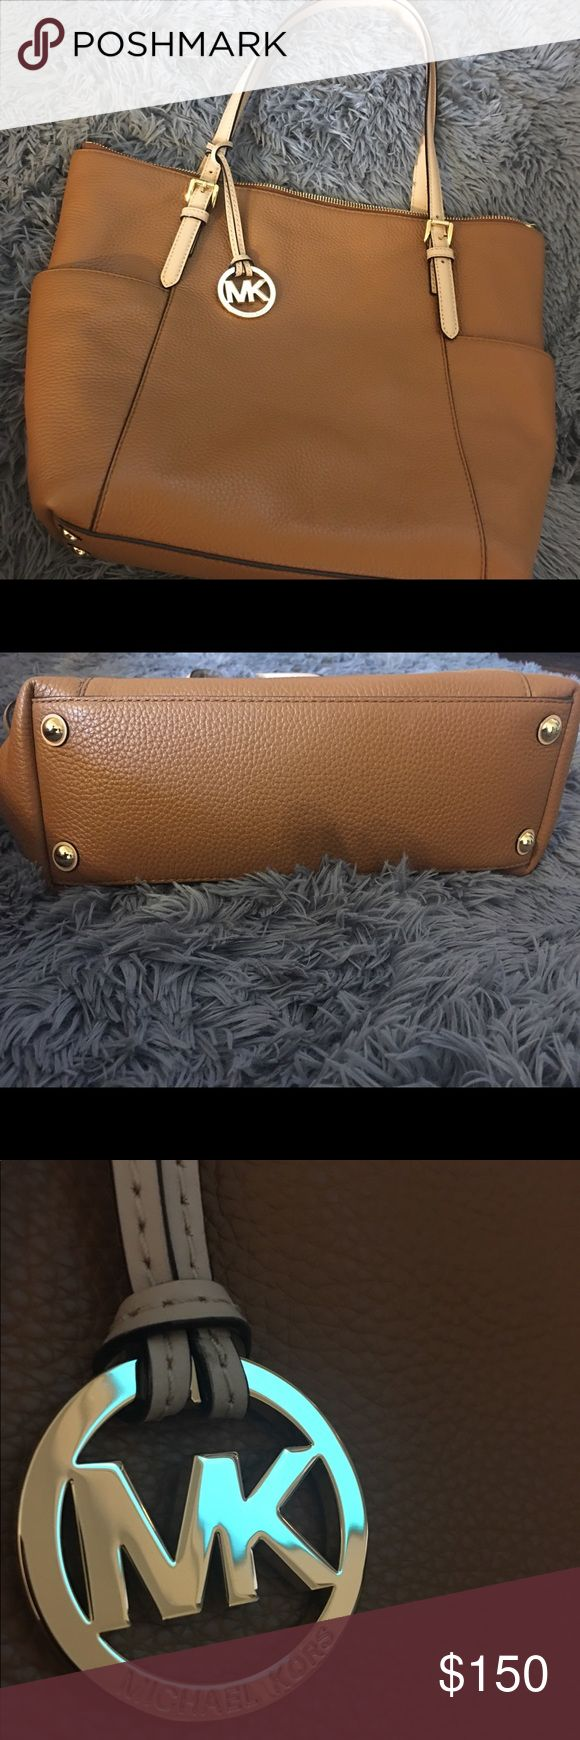 New Michael Kors Jet Set Tote Bag This is new without tags! Beautiful brown Jet Set Tote Bag ! Perfect for everyday use :) Michael Kors Bags Totes